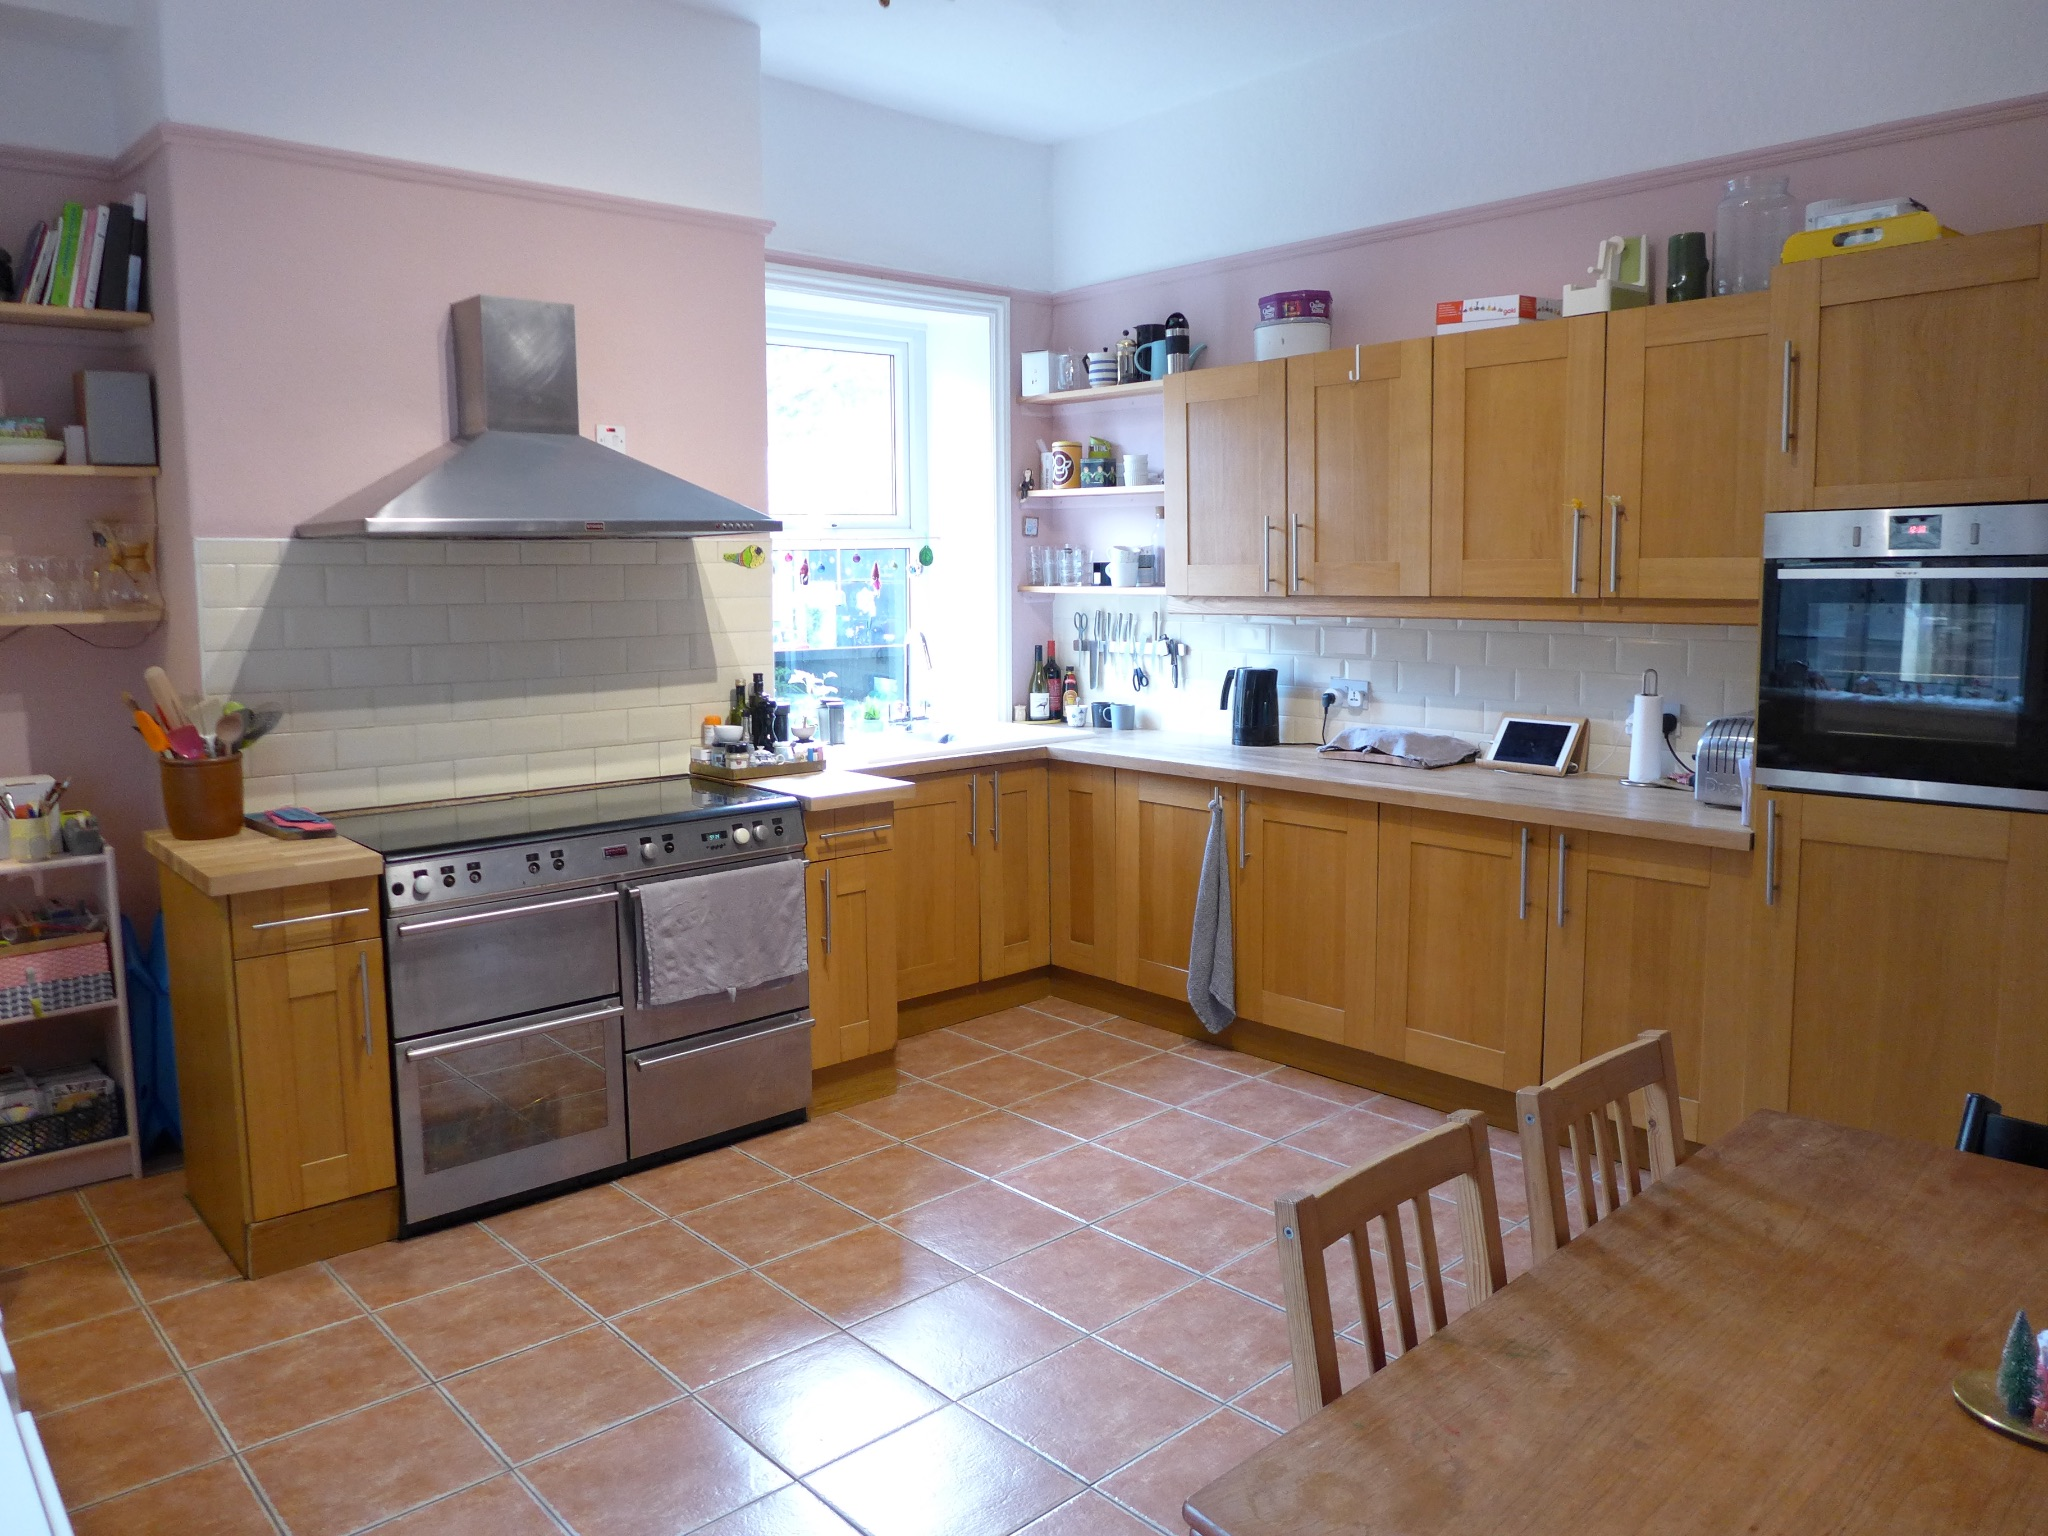 4 bedroom end terraced house For Sale in Calderdale - Photograph 9.